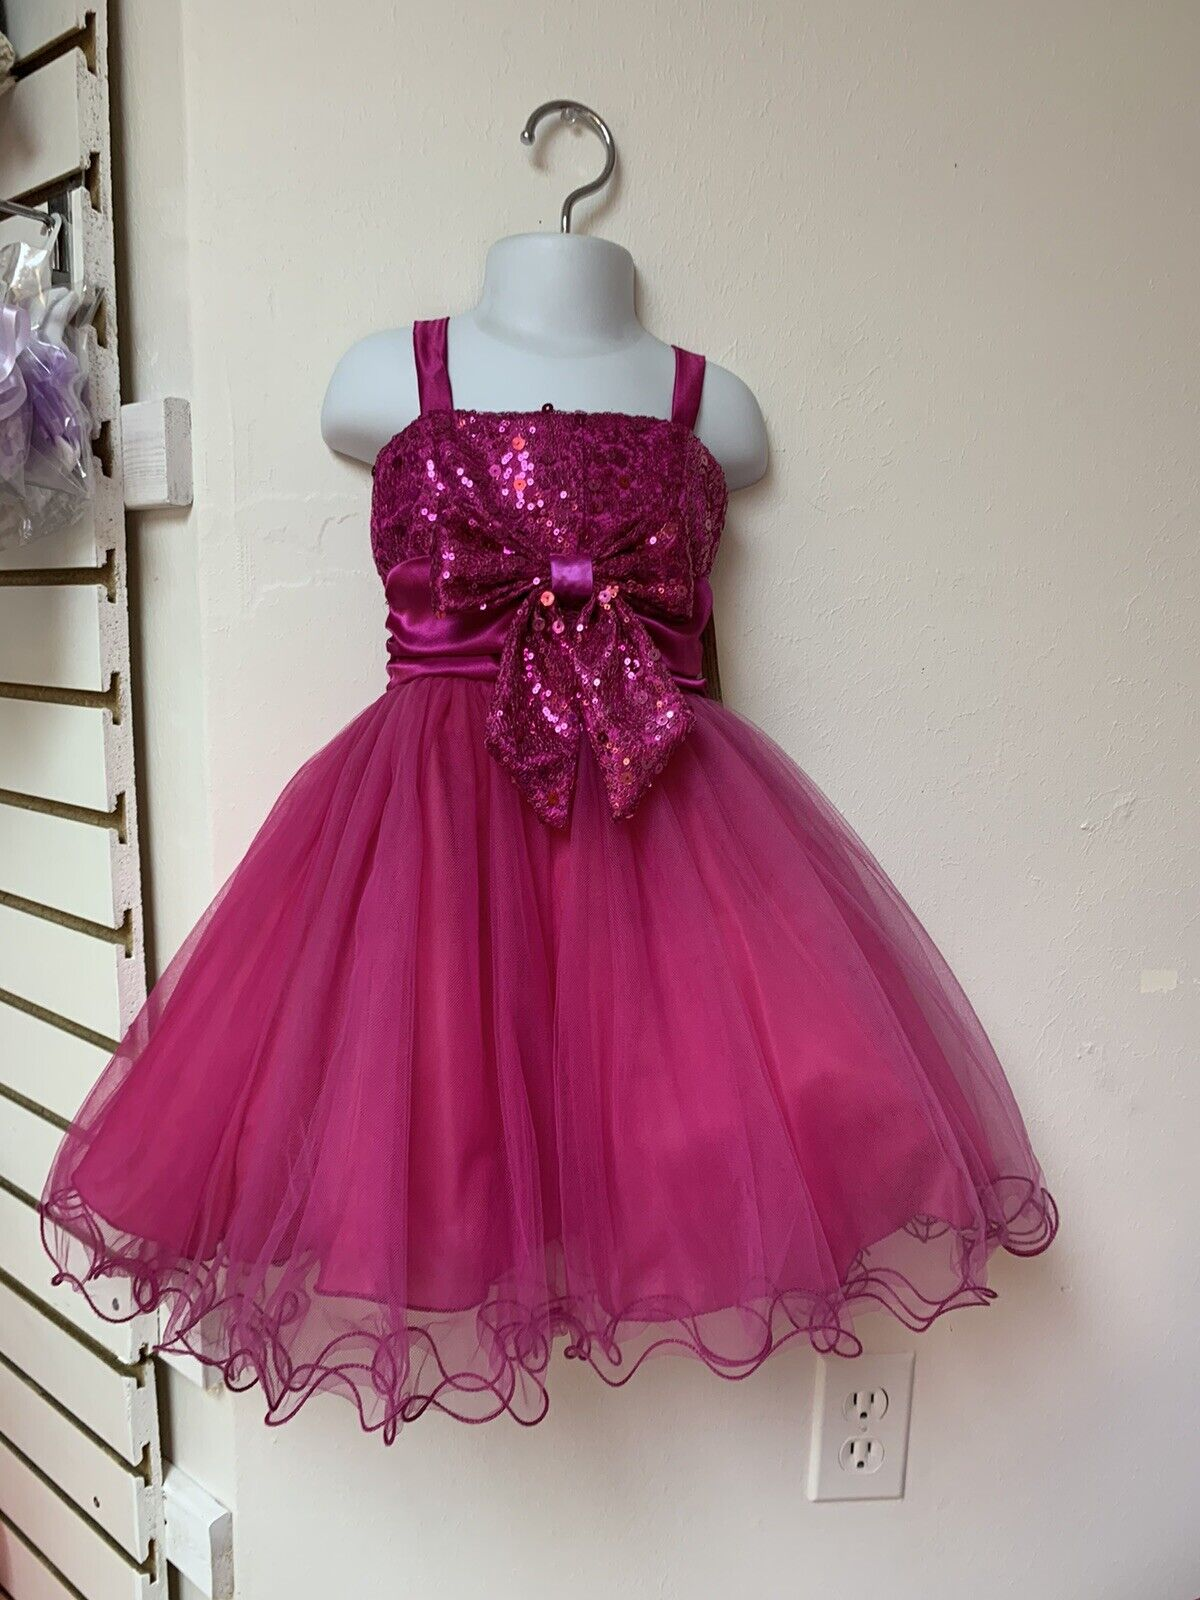 2 Easter Pageant Crowning Flowergirl Special Occasion Dance Formal Dress NWT